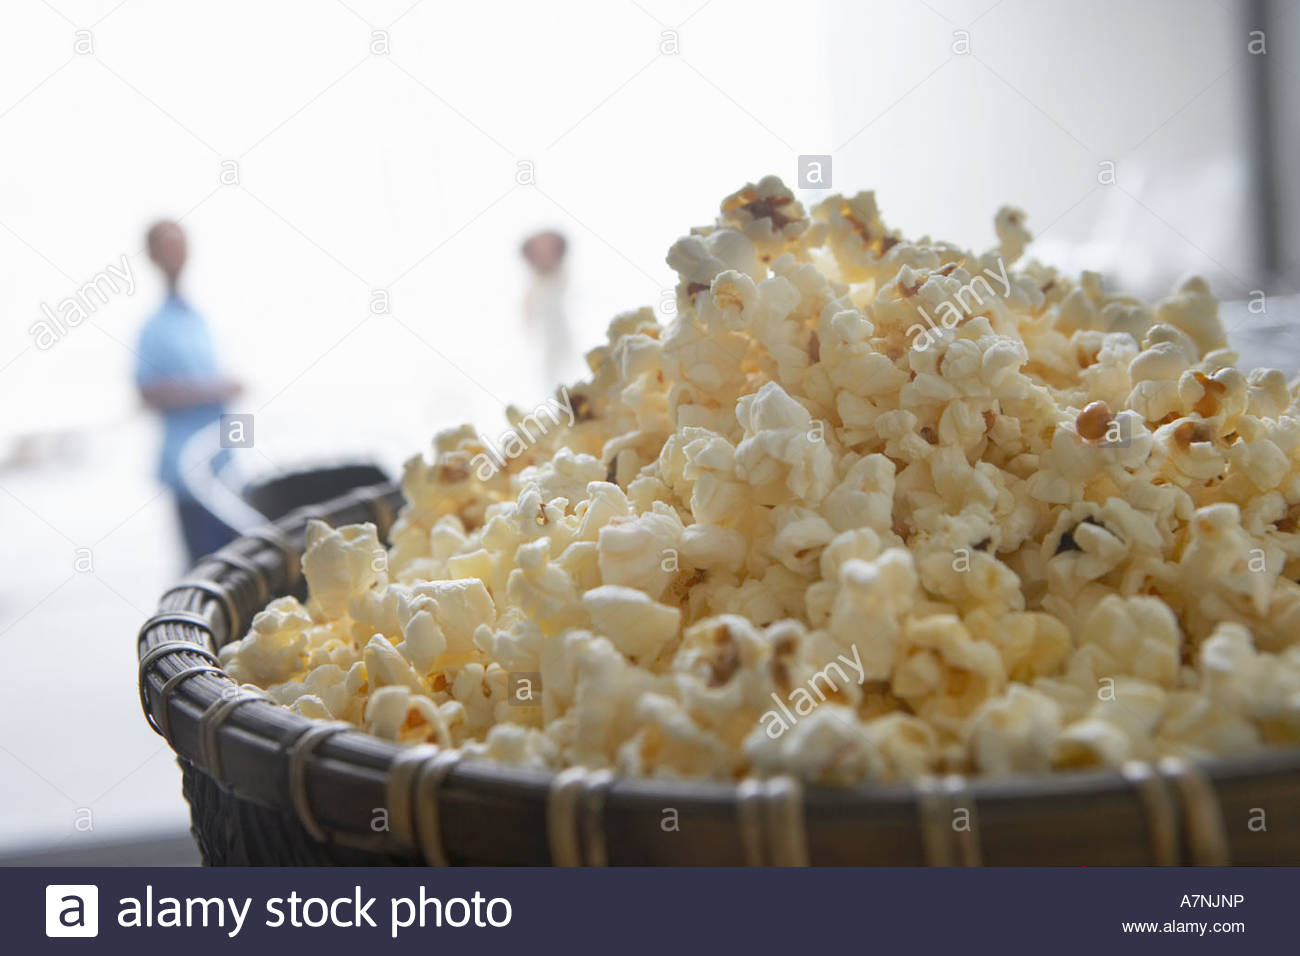 Bowl of popcorn close up people in background focus on foreground - Stock Image